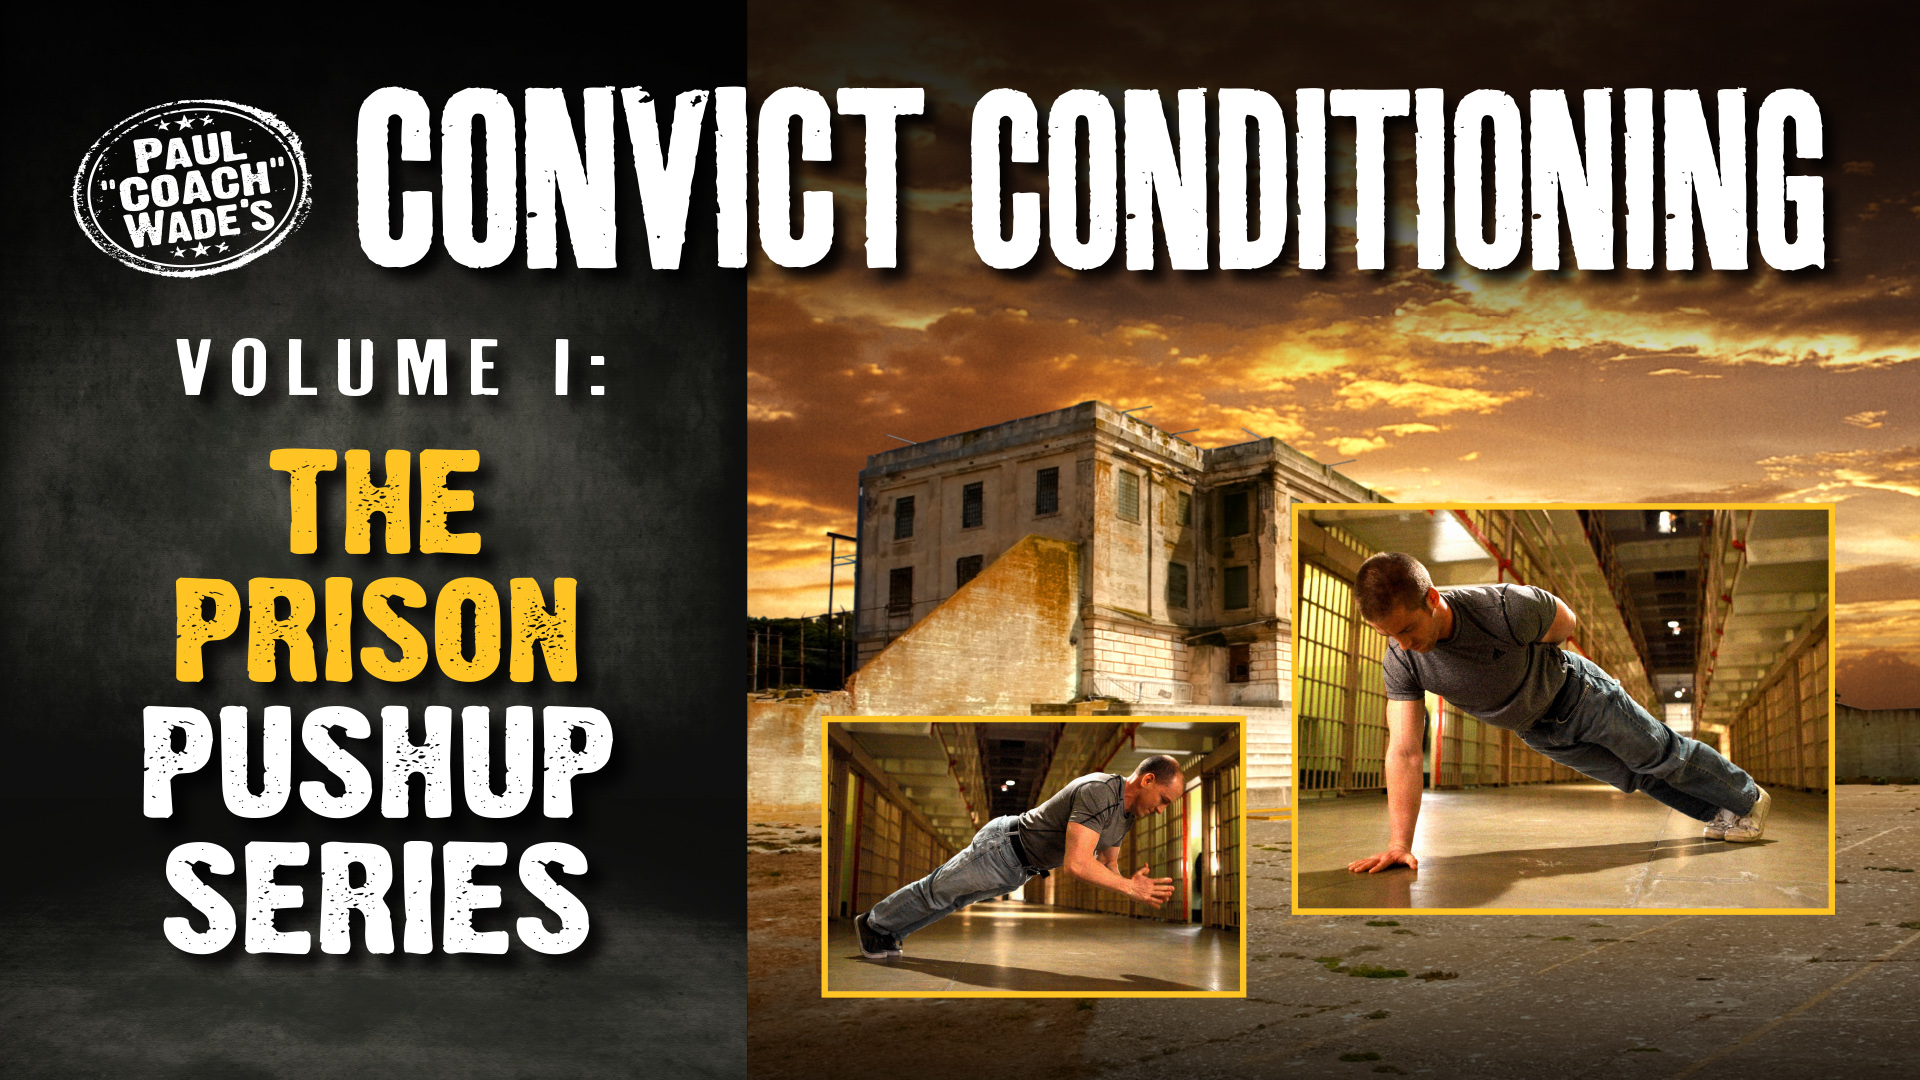 Convict Conditioning, Volume 1: The Prison Pushup Series